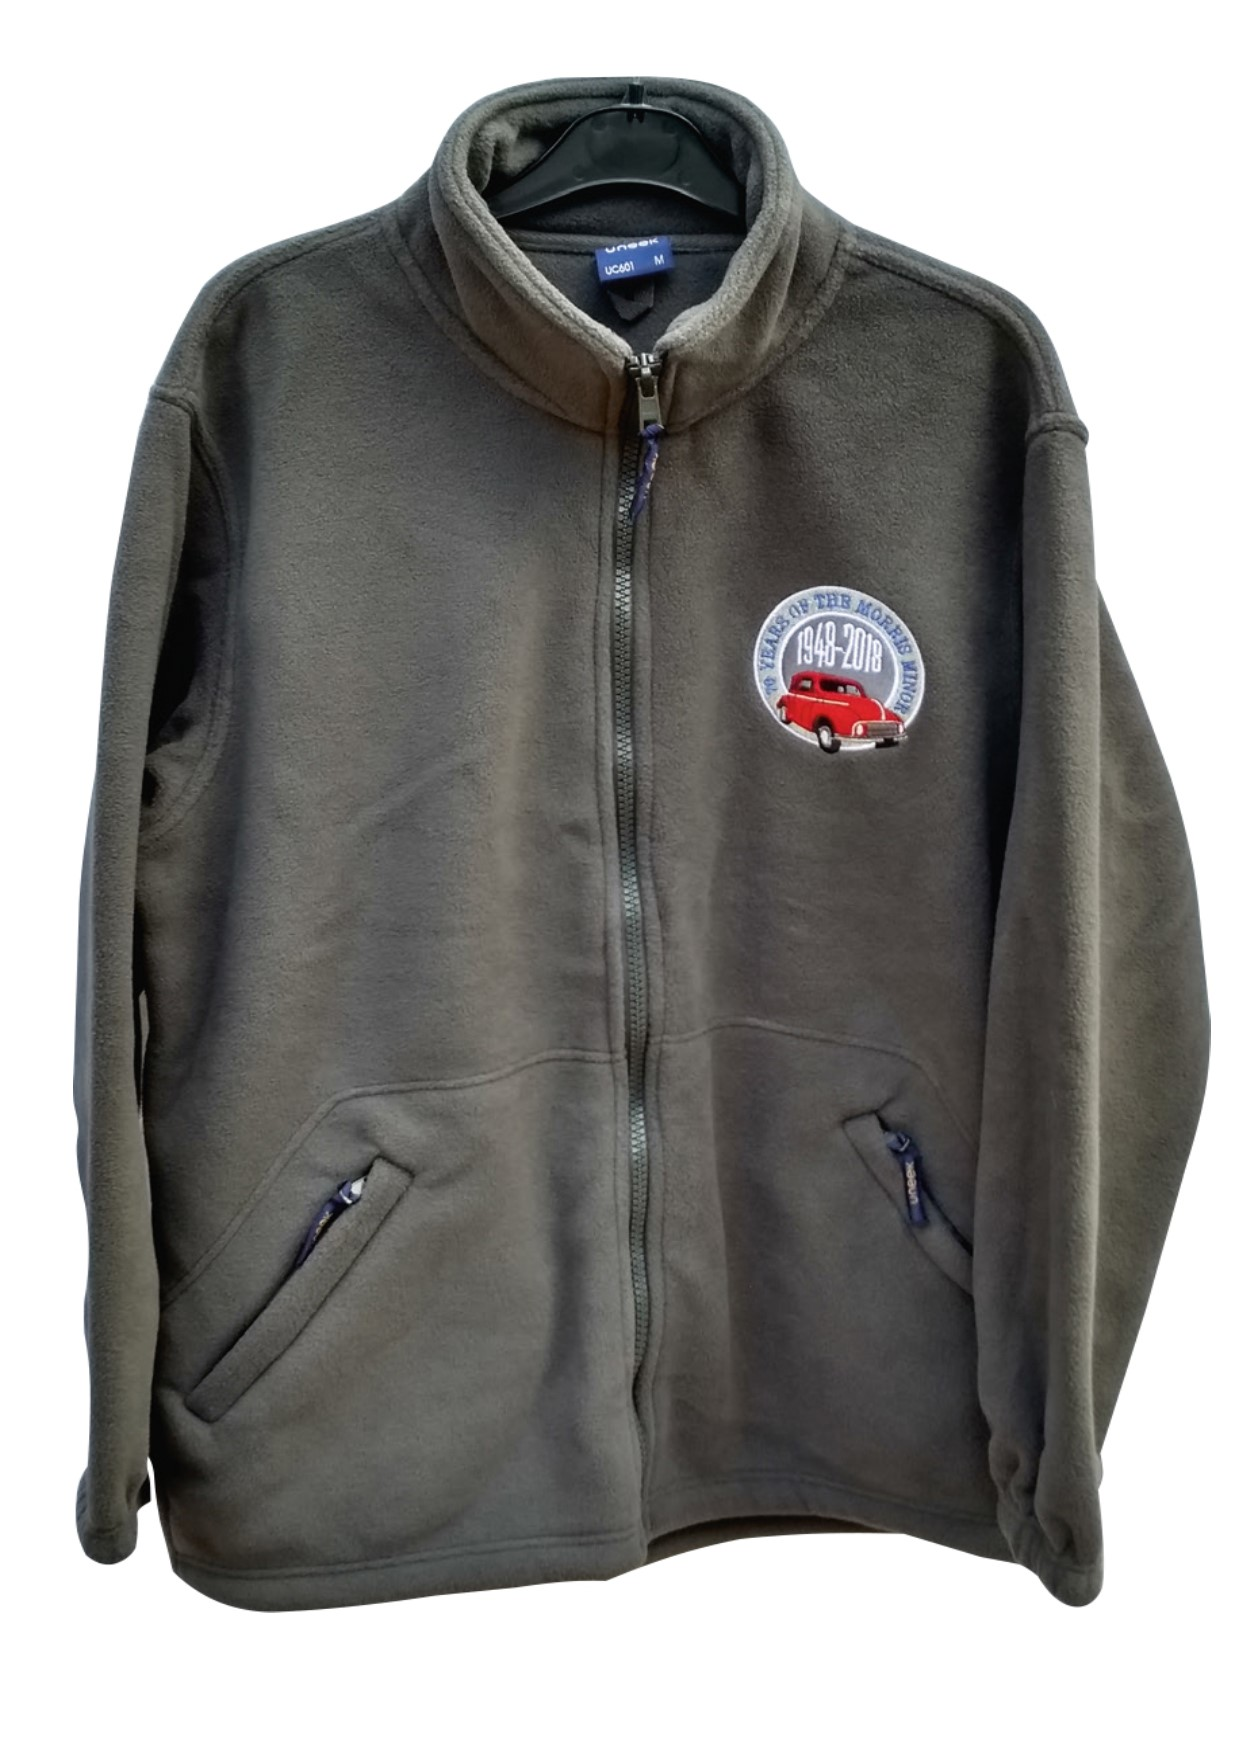 70th Anniversary Fleece Charcoal